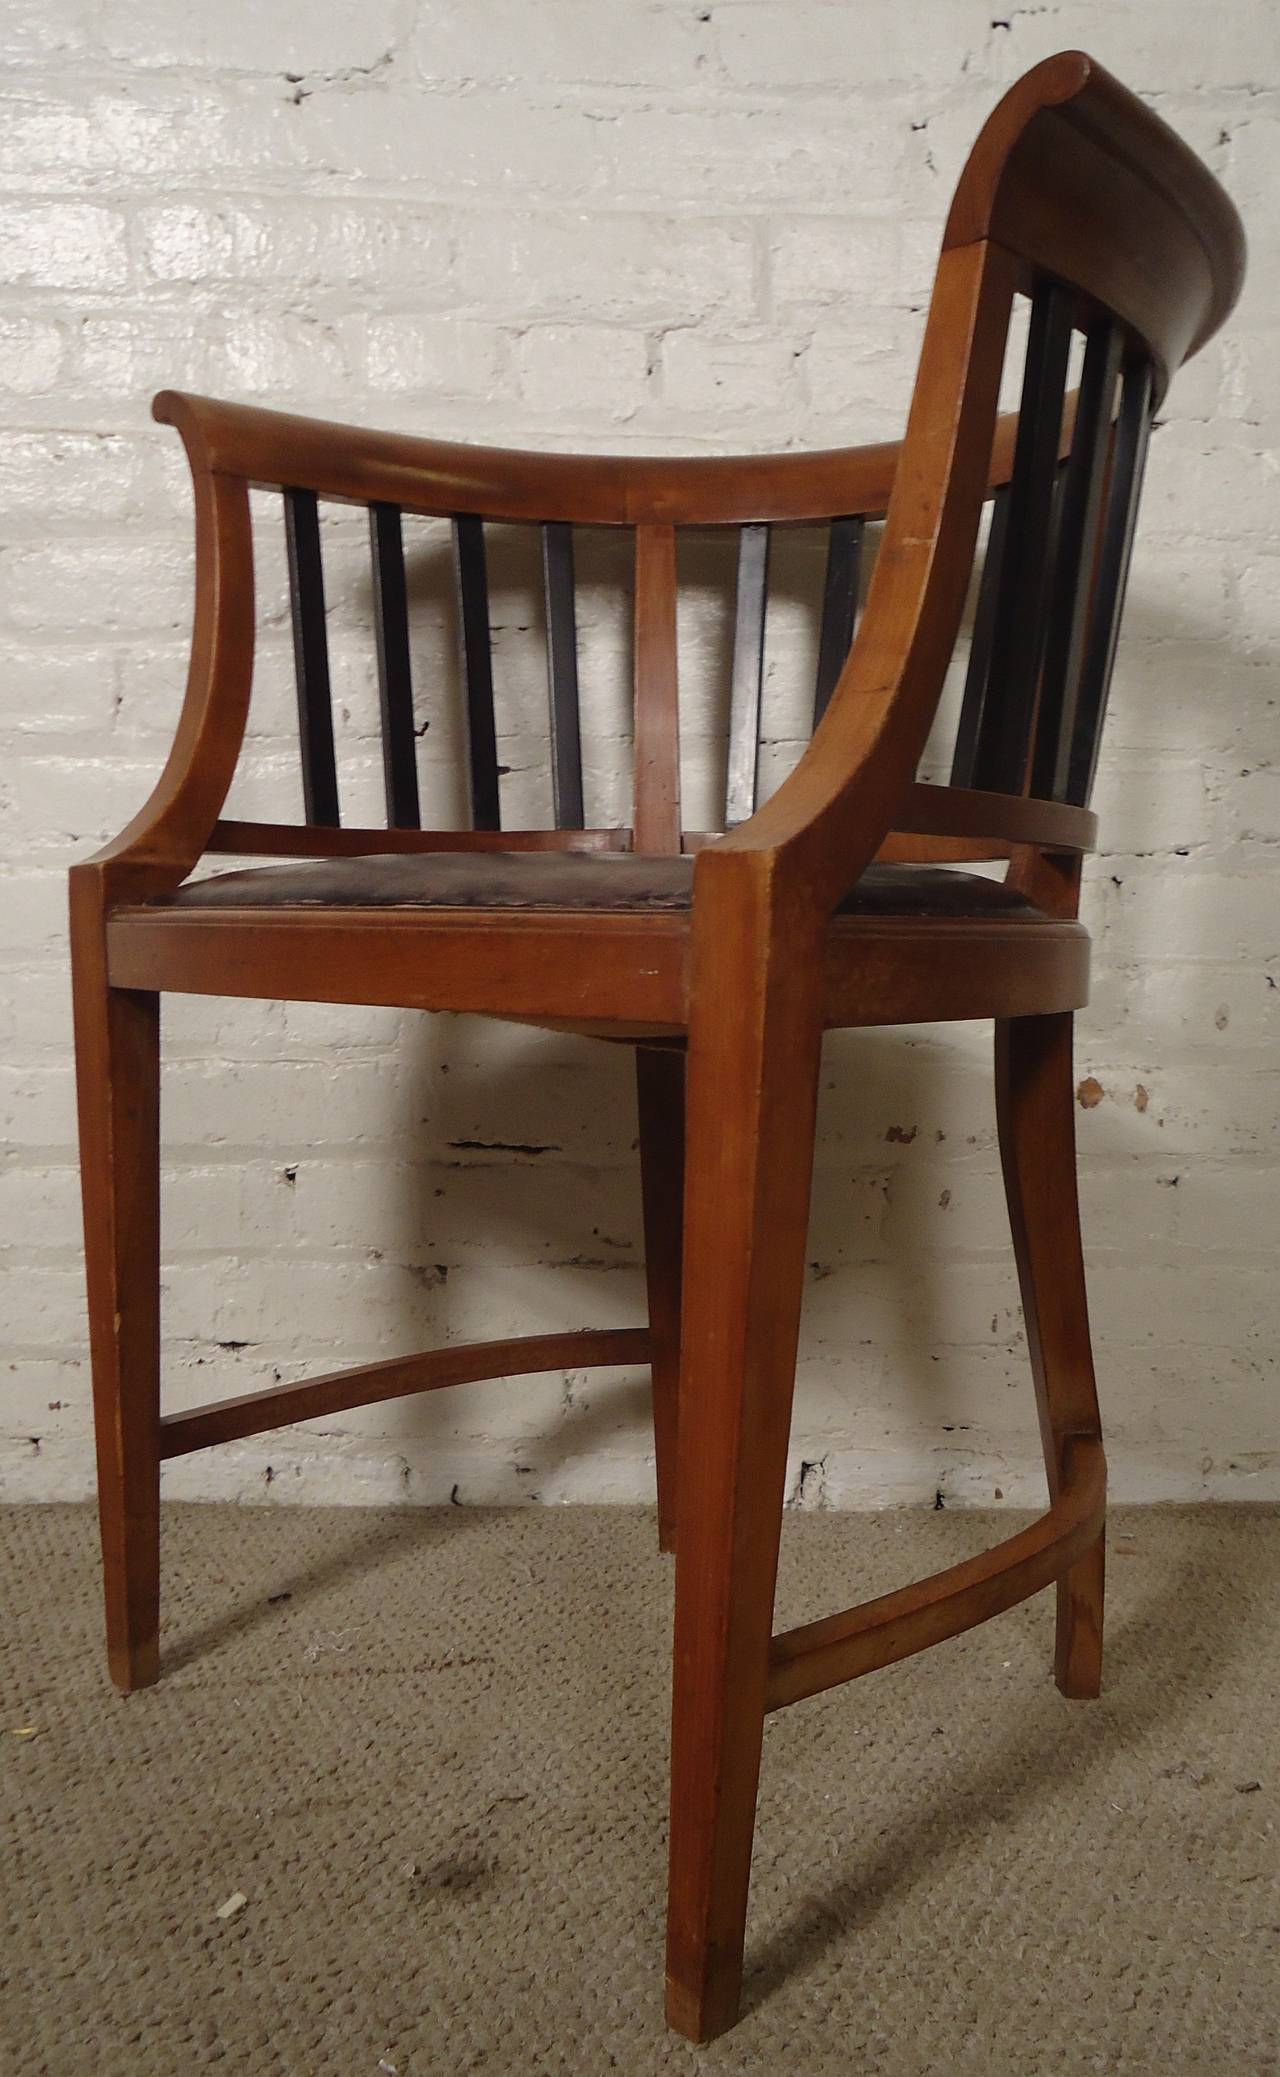 Unique Vintage Round Back Spindle Chair For Sale At 1stdibs